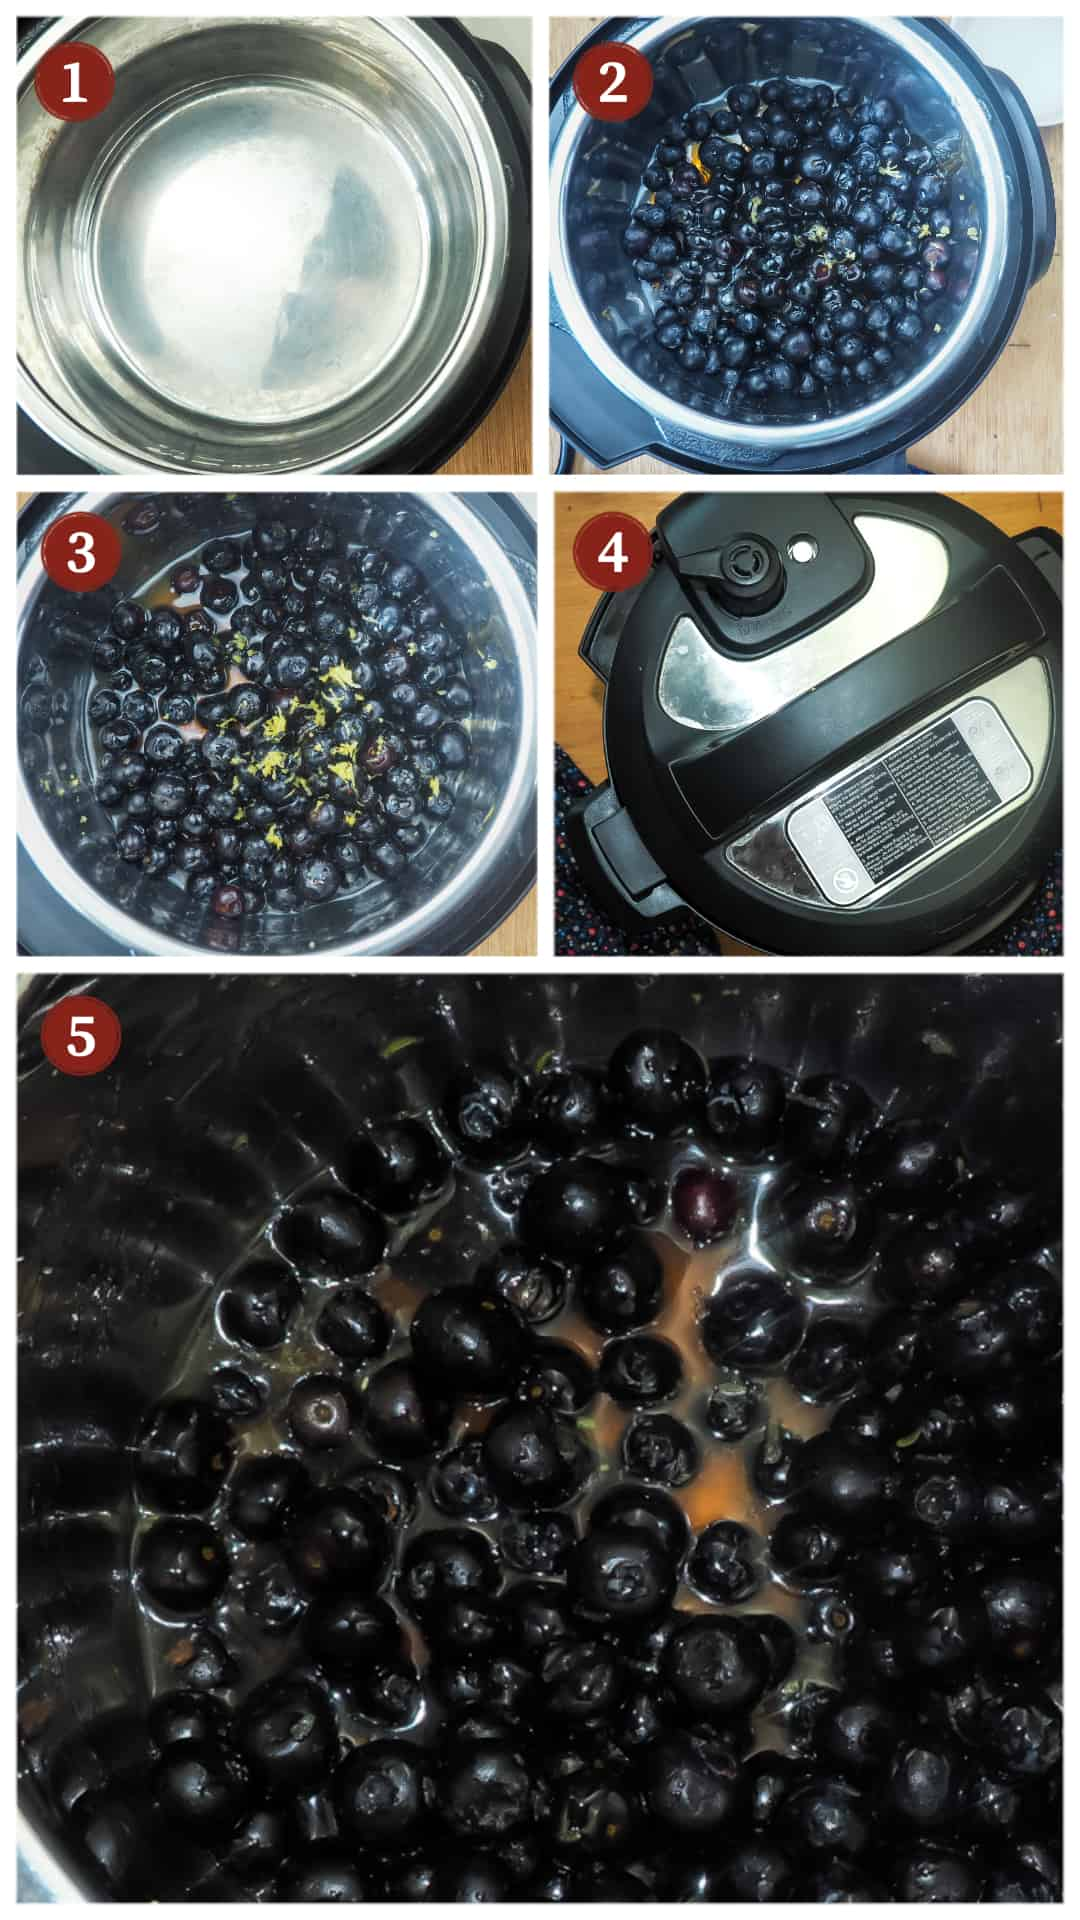 A collage of images showing the process of making paleo blueberry jam in an Instant Pot, steps 1 - 5.